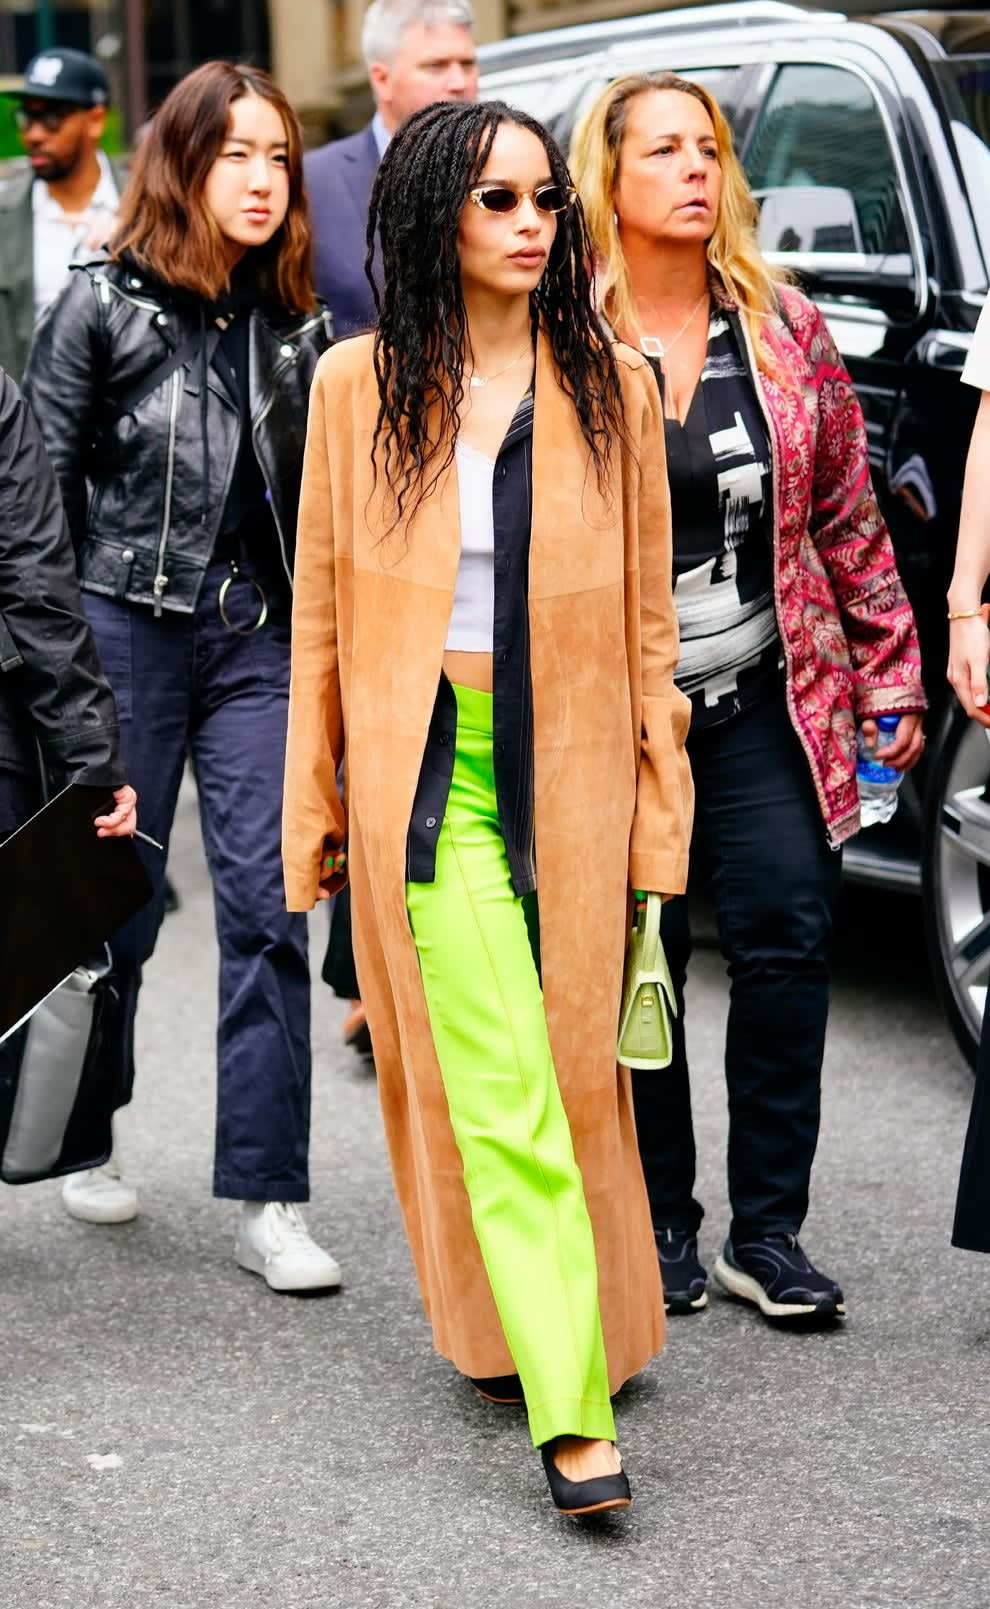 Zoe outside in bright pants, long suede coat, shades